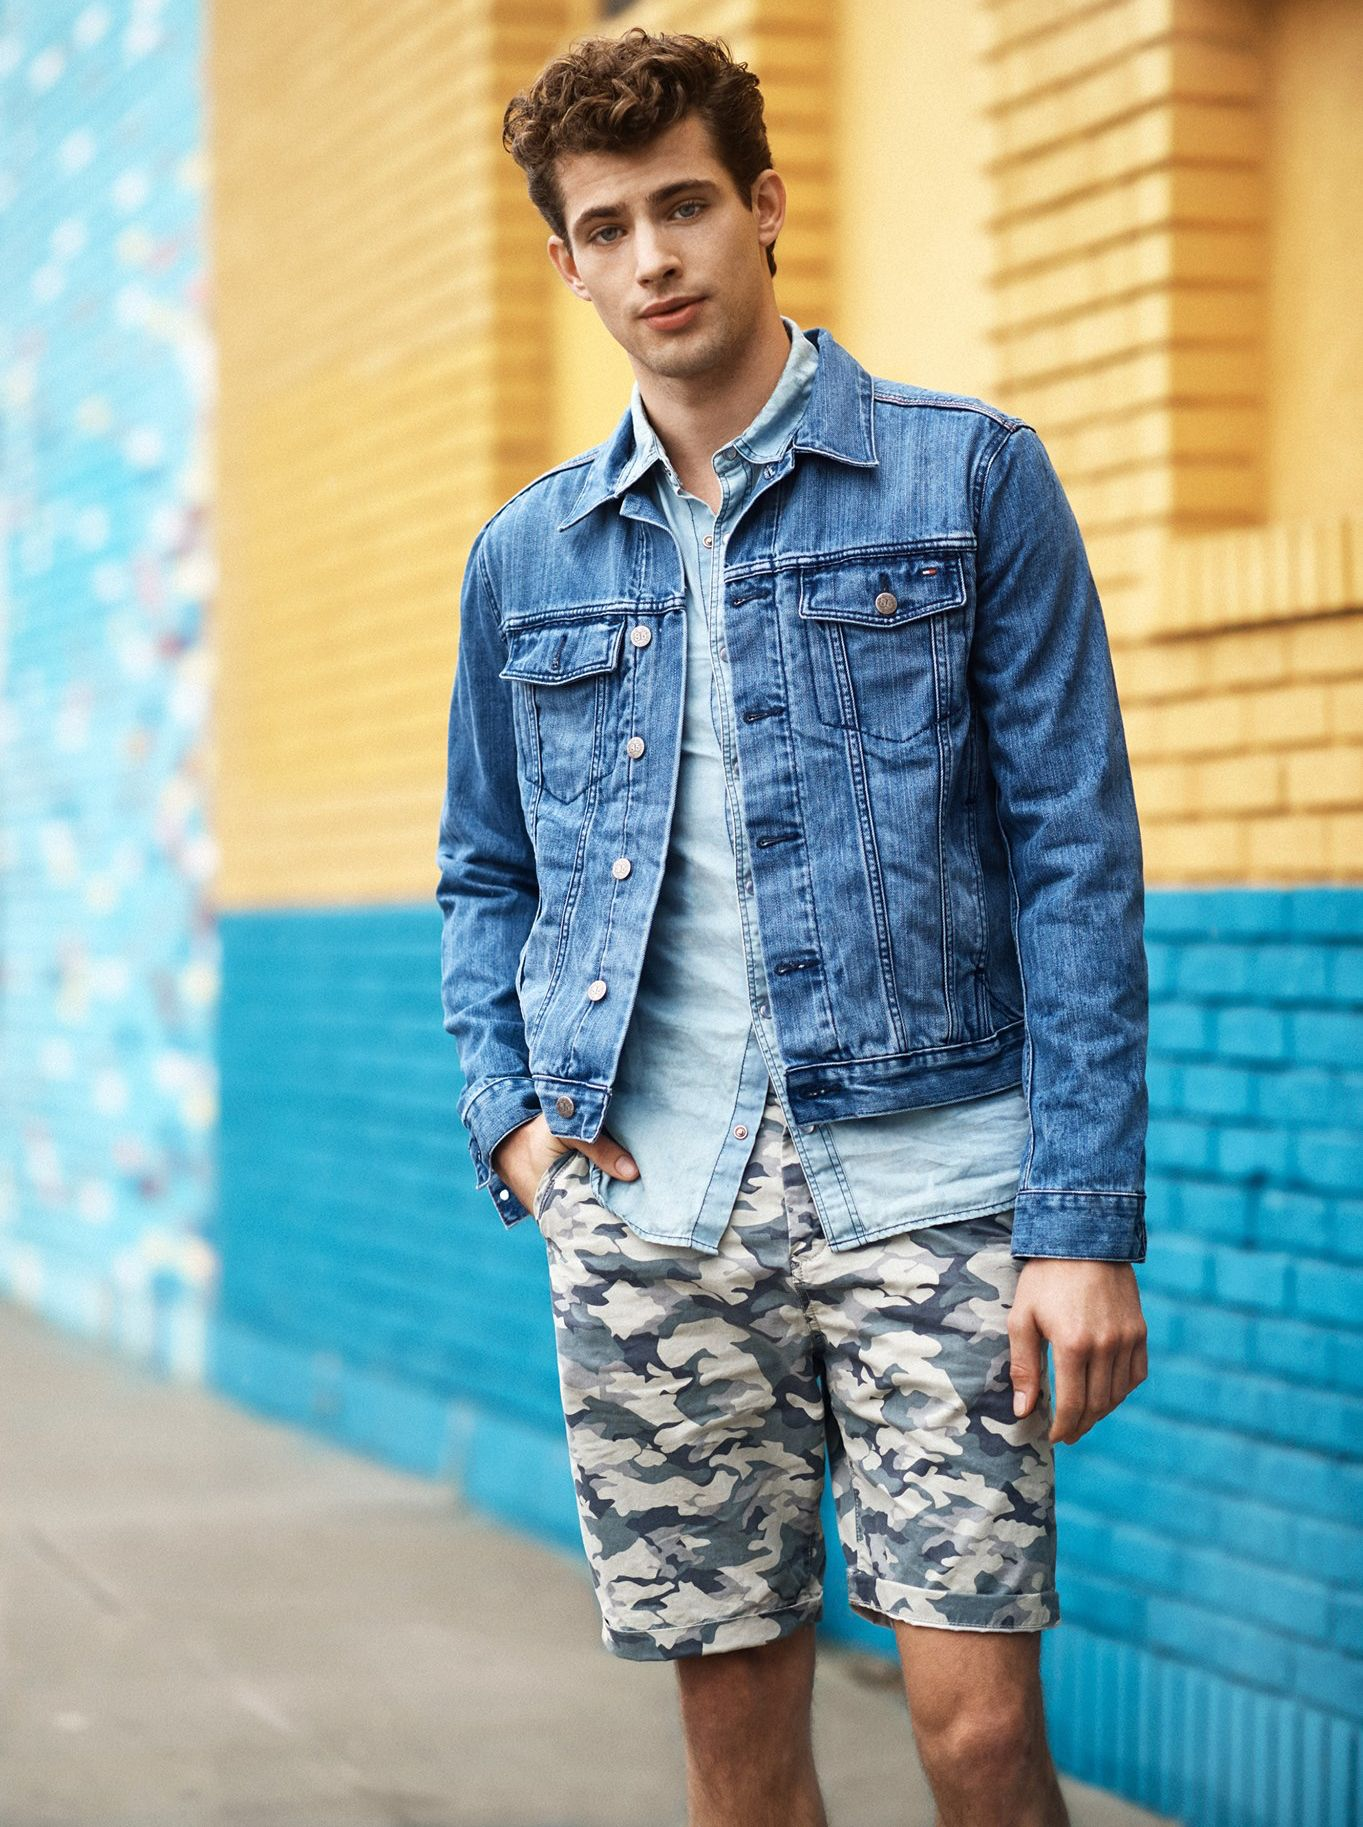 Tommy Hilfiger Visits Los Angeles with Casual Men's Denim Styles ...